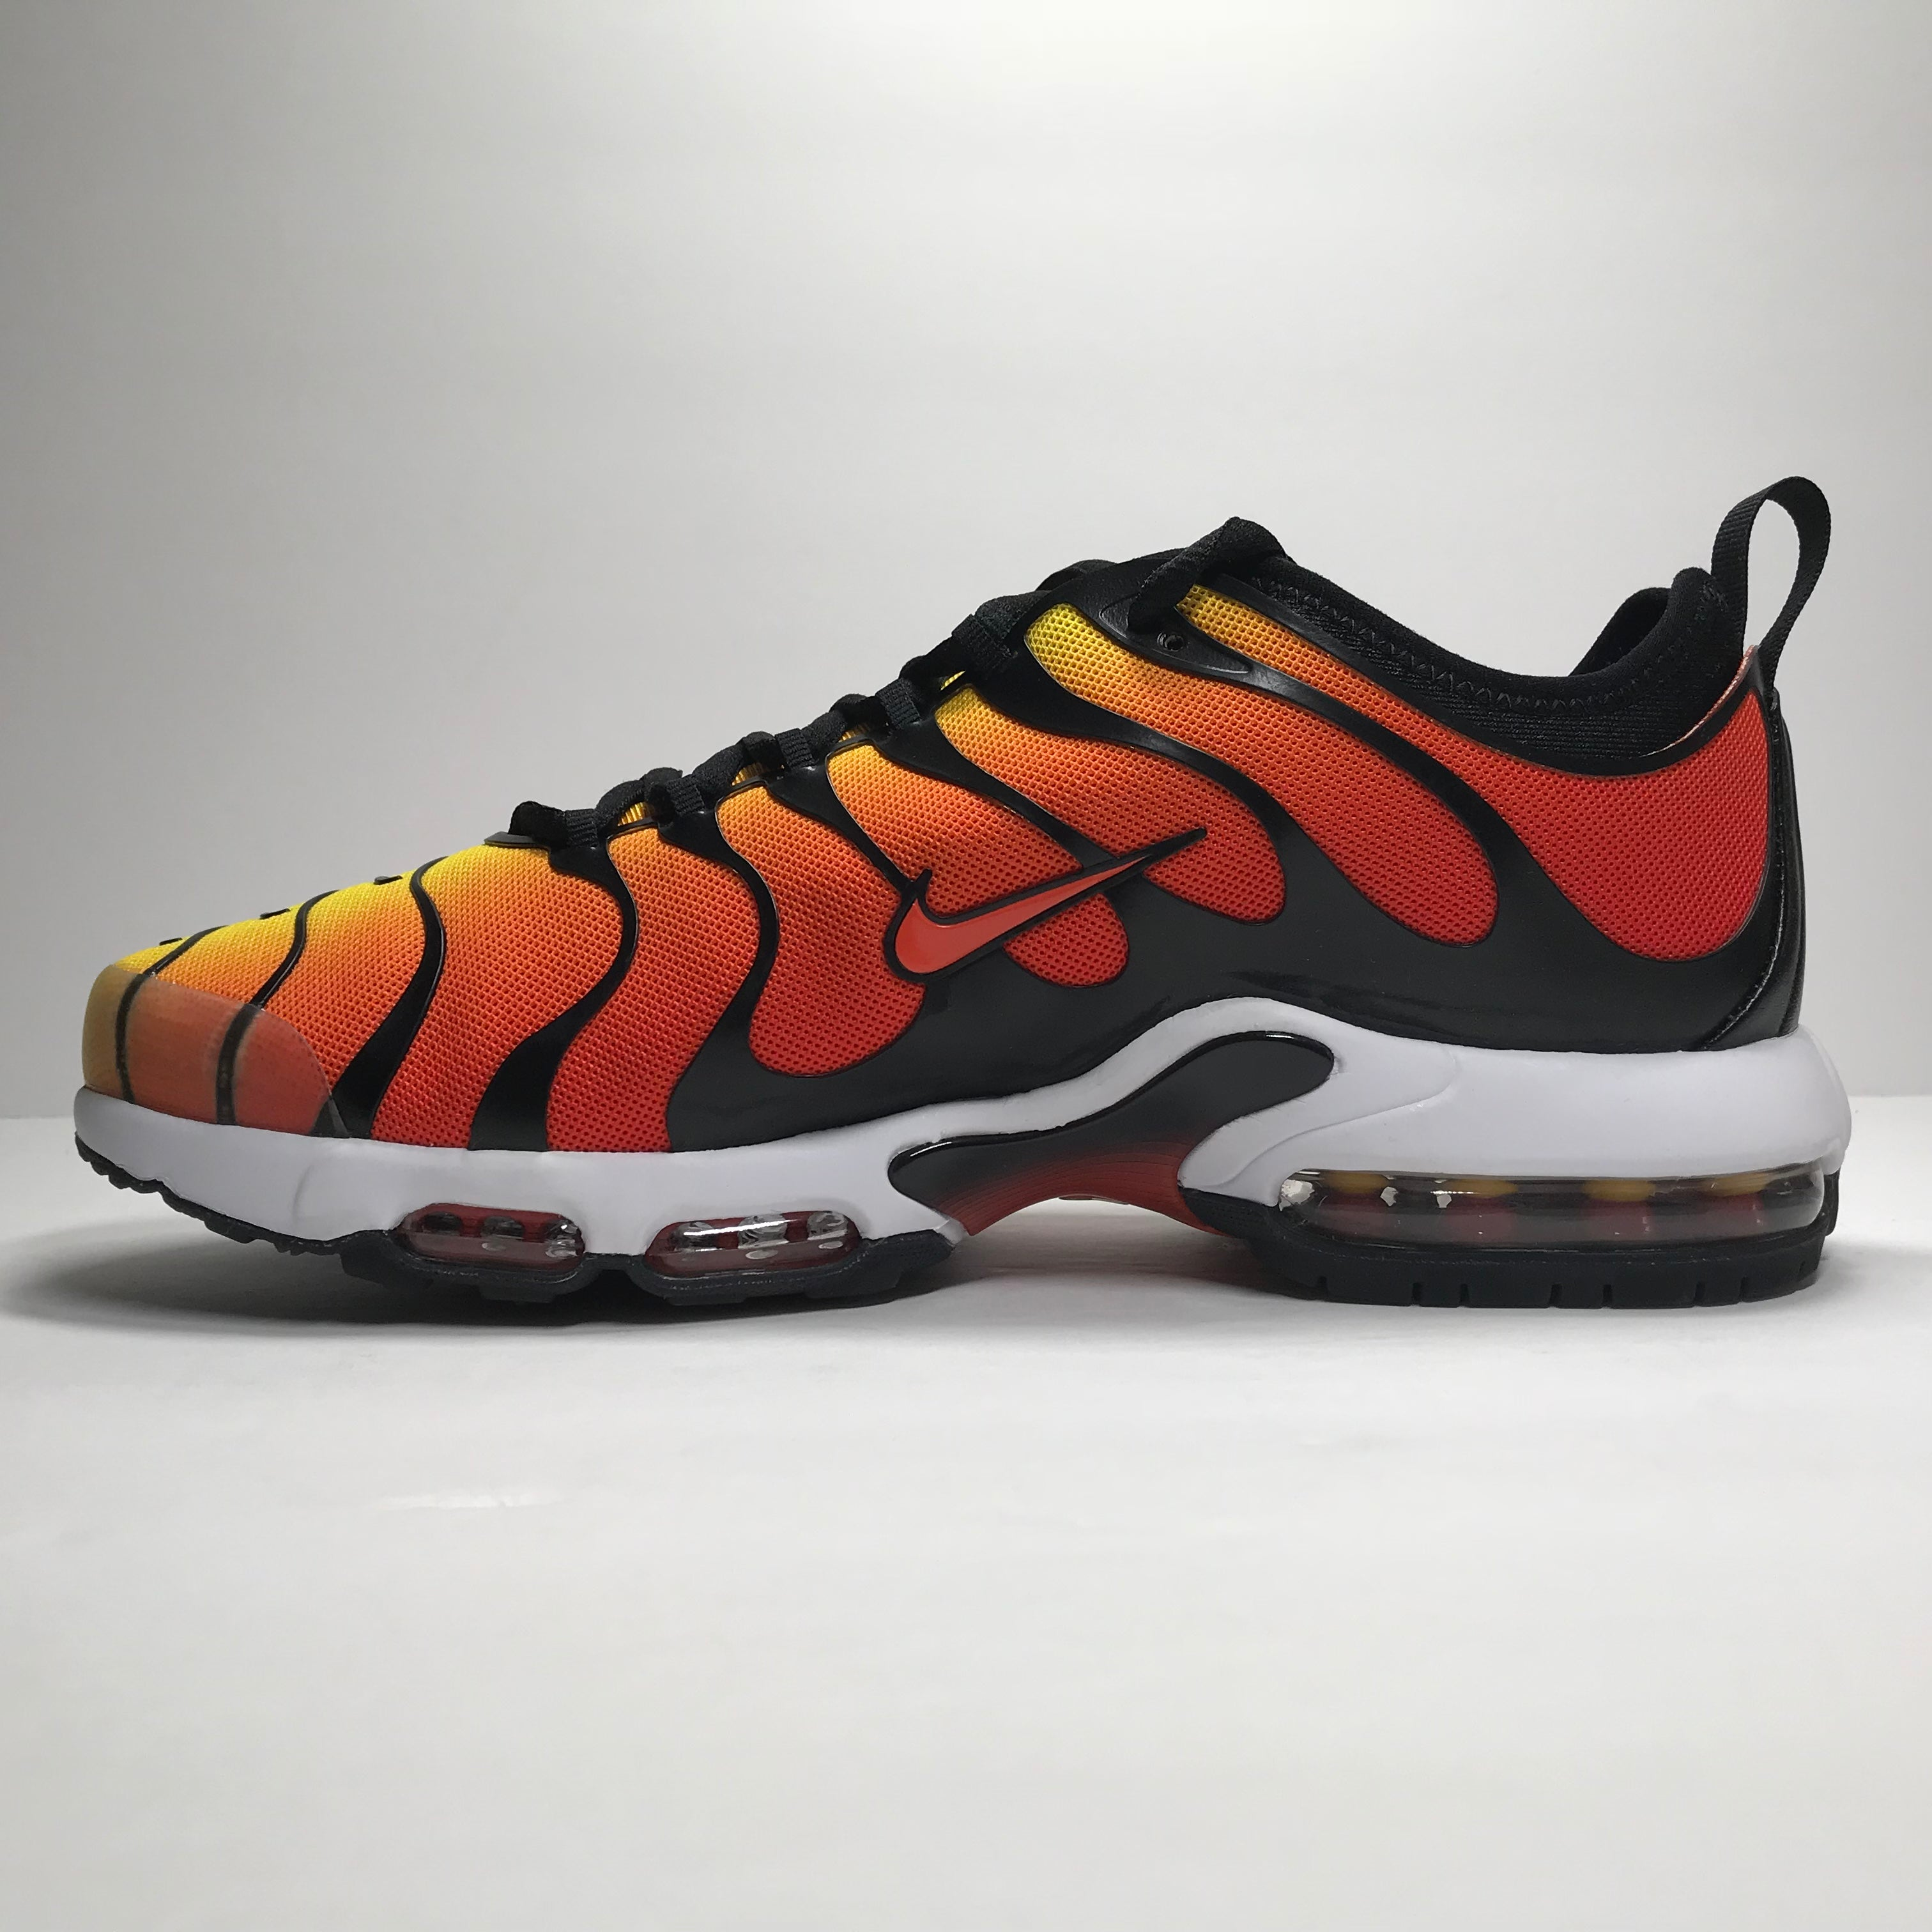 newest 683d1 abe17 DS Nike Air Max Plus TN Ultra Tiger Sunset Orange Size 9Size 10.5 ...